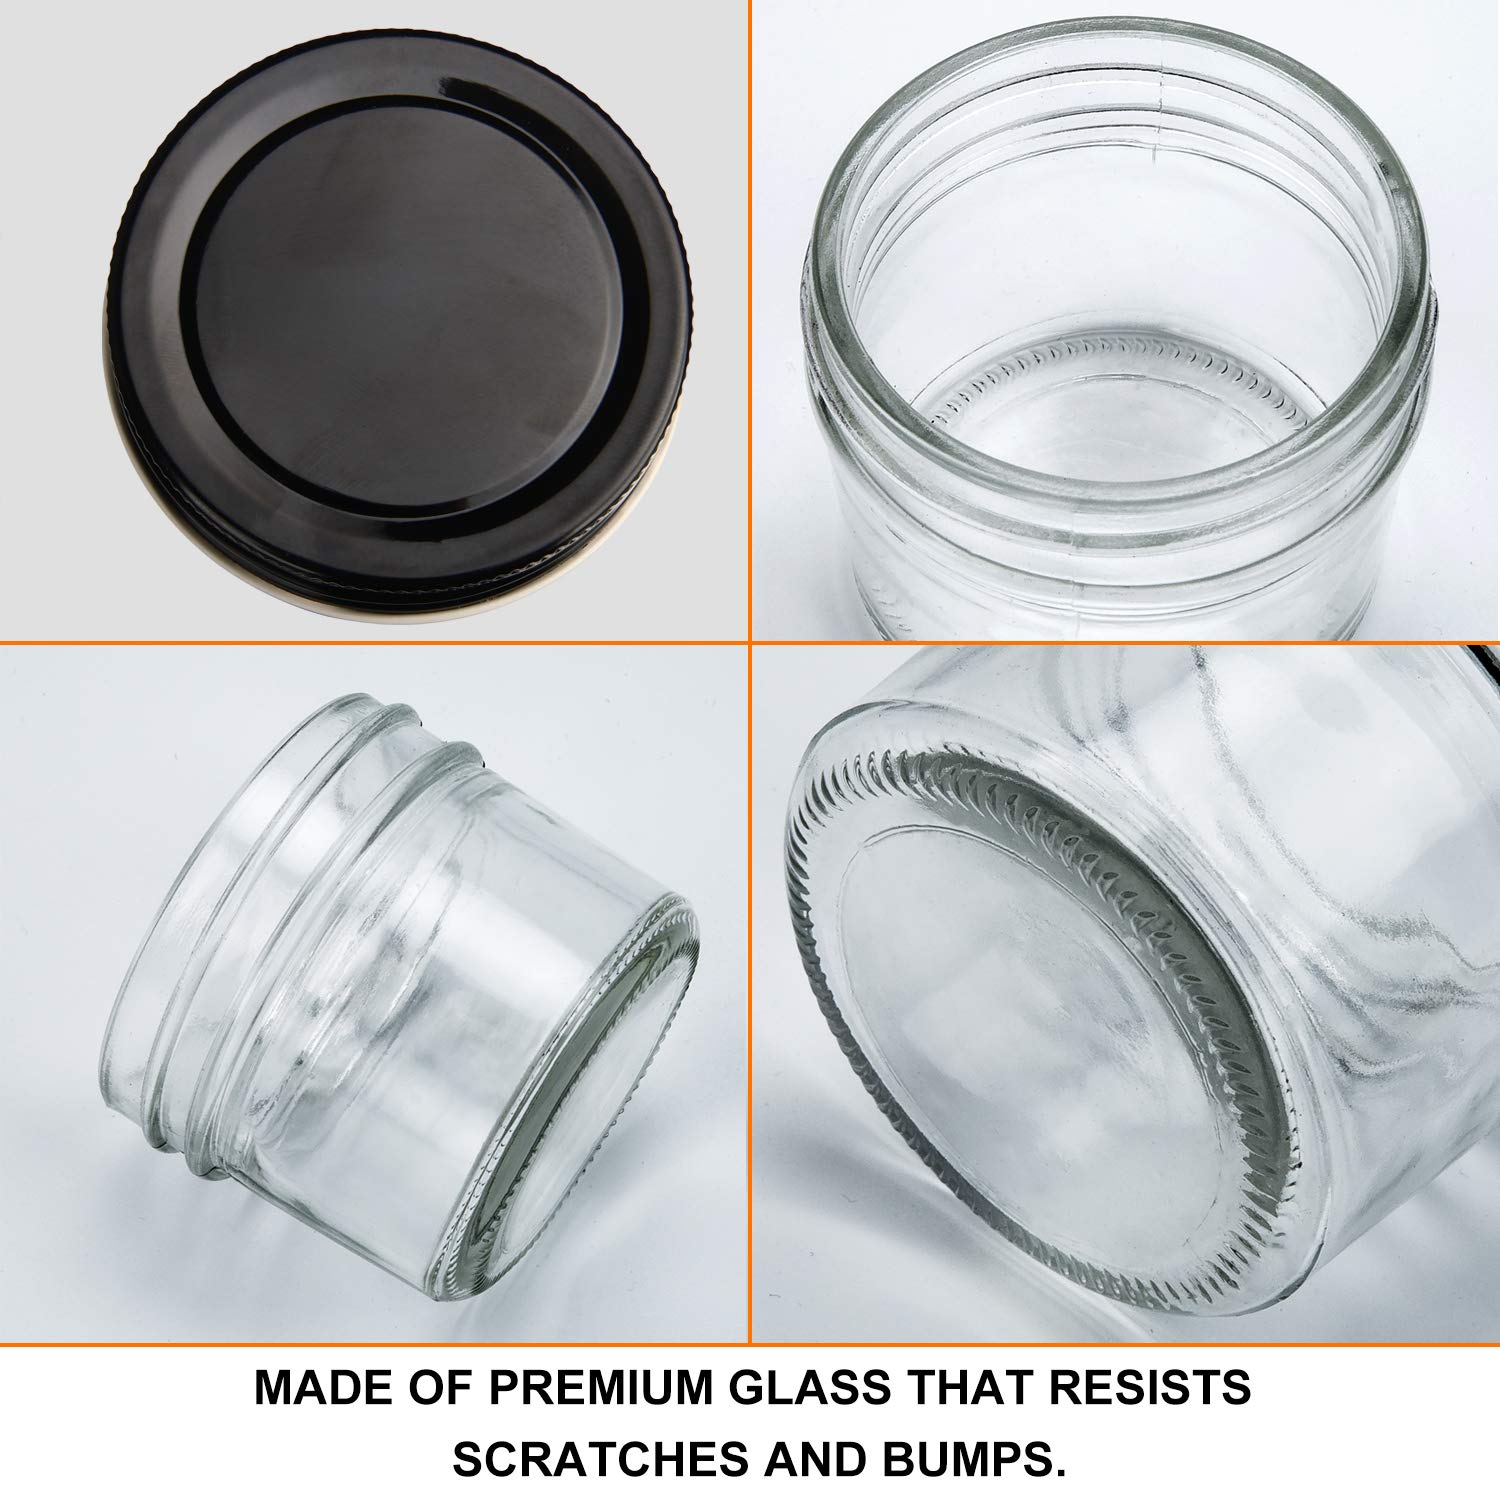 4oz Glass Jars With Lids,Small Mason Jars Wide Mouth,Mini Canning Jars With Black Lids For Honey,Jam,Jelly,Baby Foods,Wedding Favor,Shower Favors,Spice Jars For Kitchen & Home,Set of 40 by QAPPDA (Image #3)